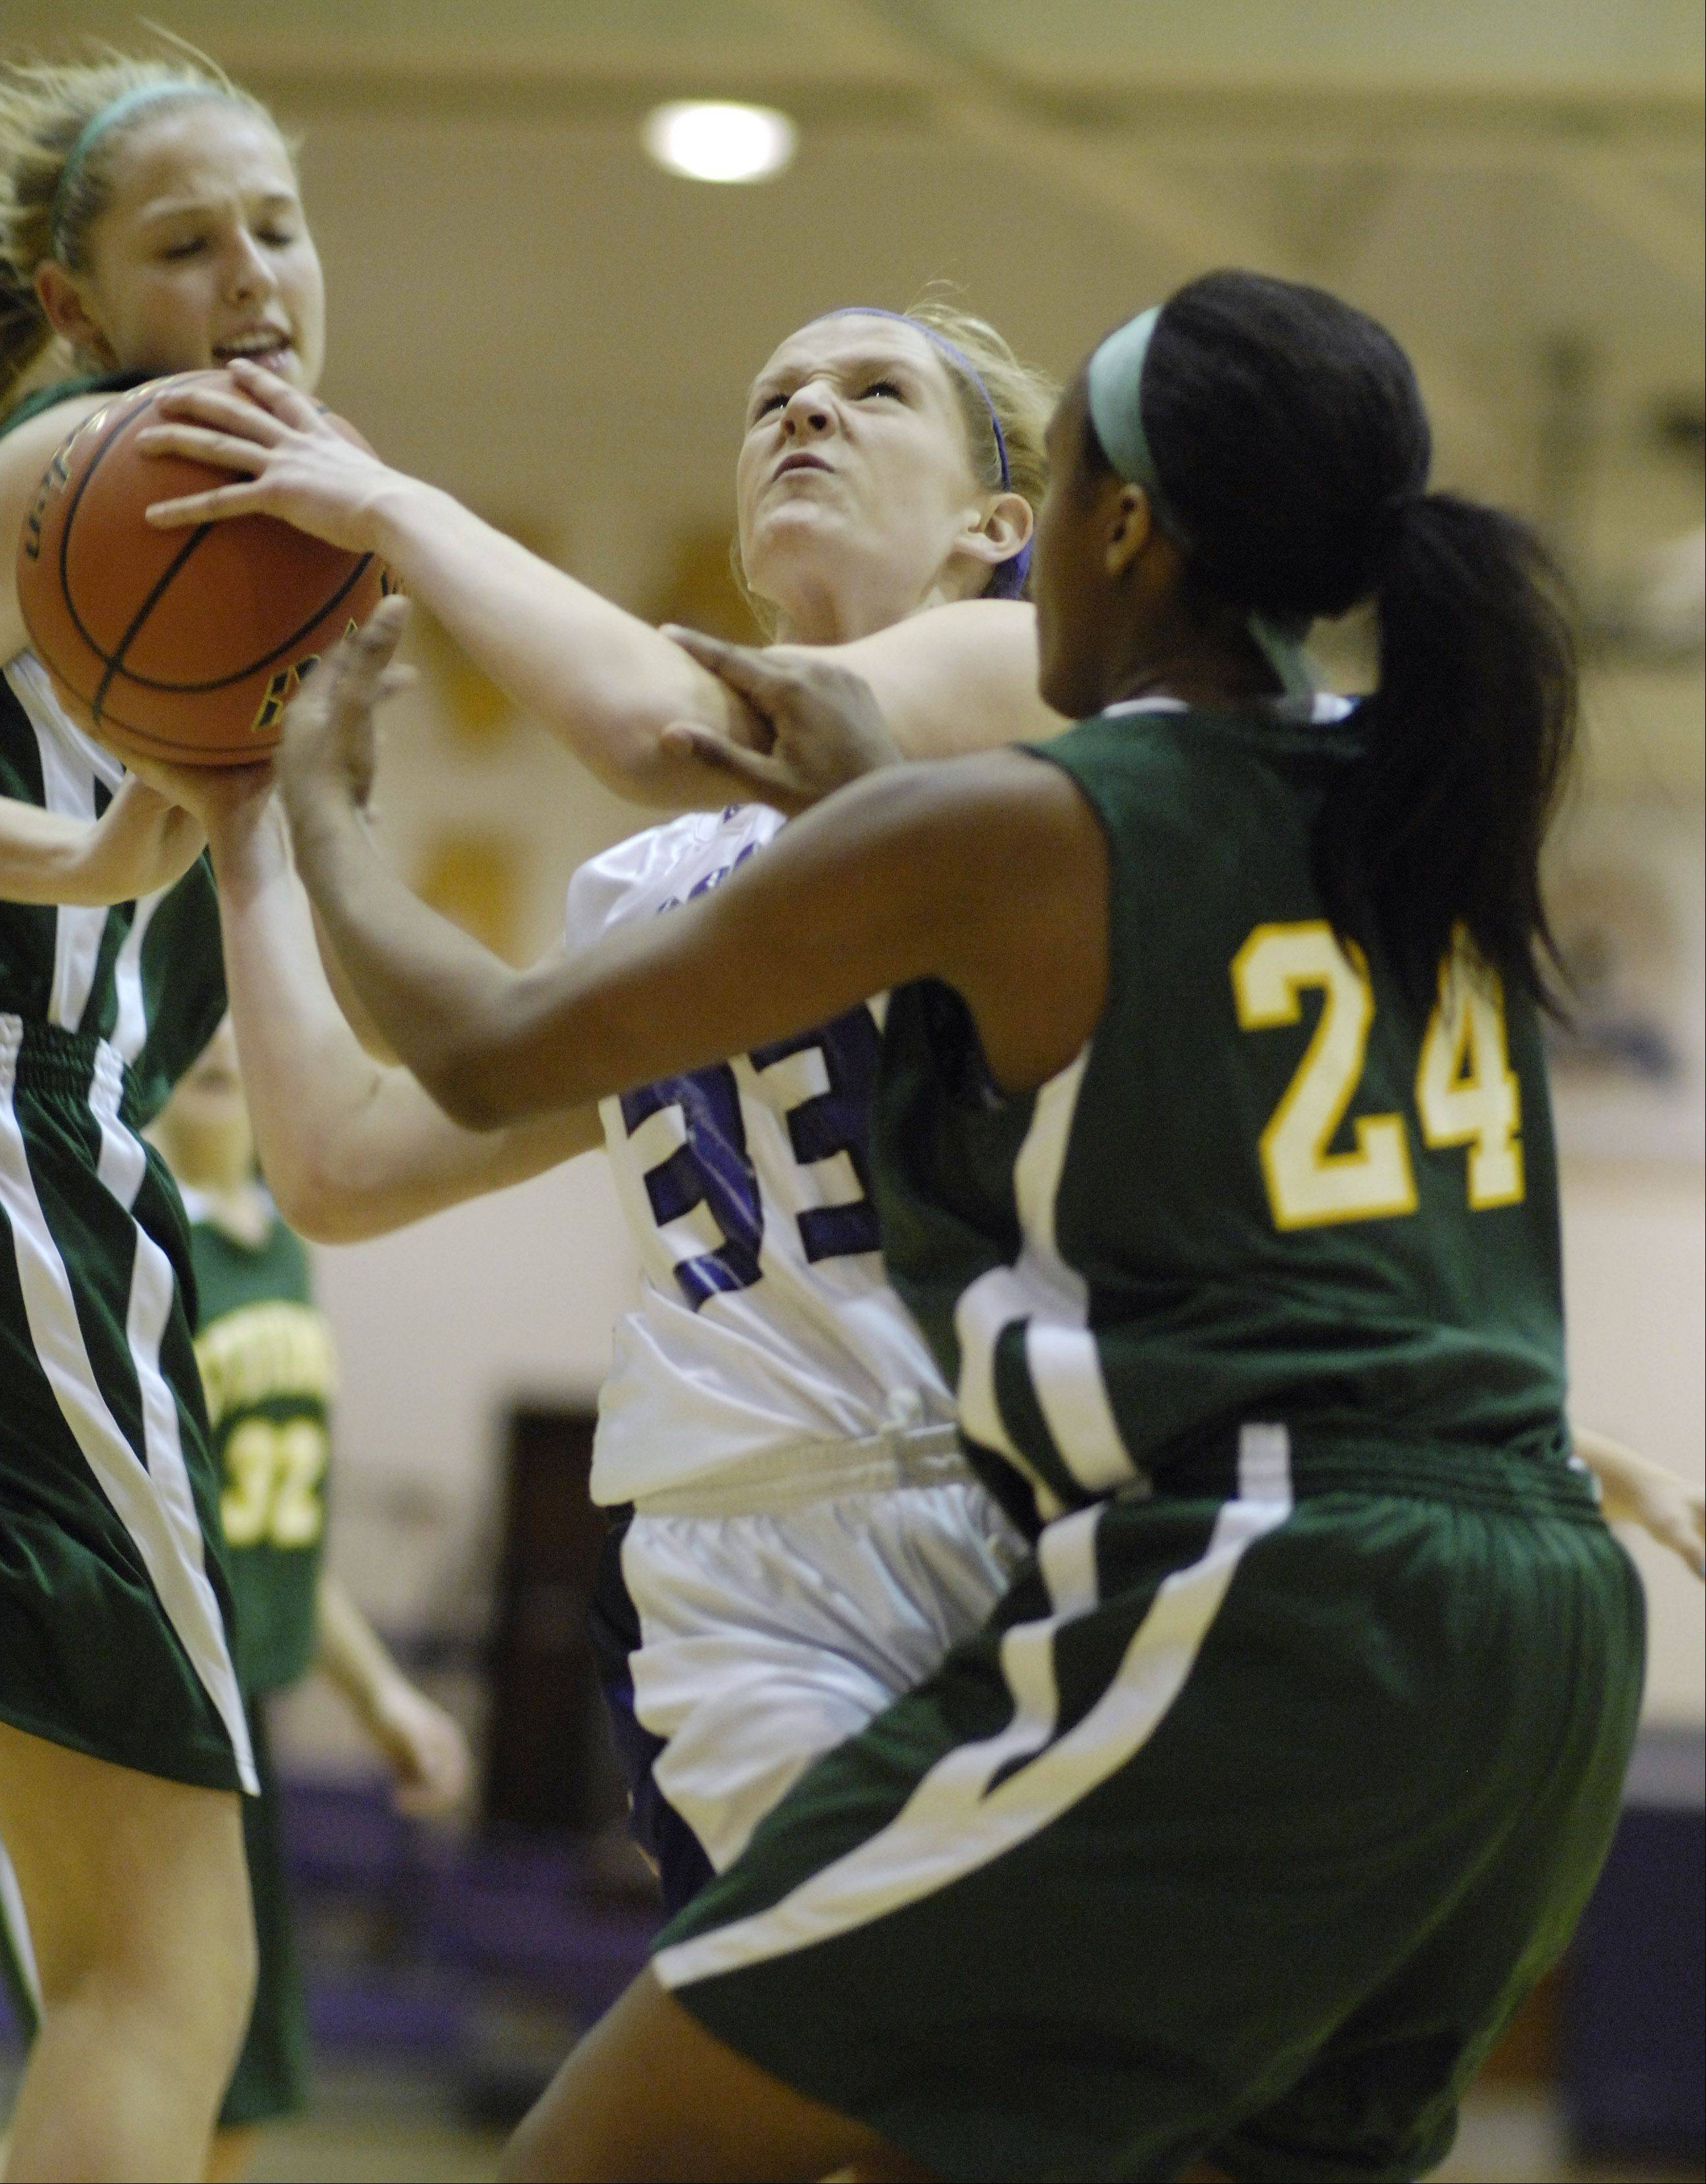 Rolling Meadows' Jenny Vliet, middle, drives to the basket against Stevenson defenders including Taylor Buford, right.